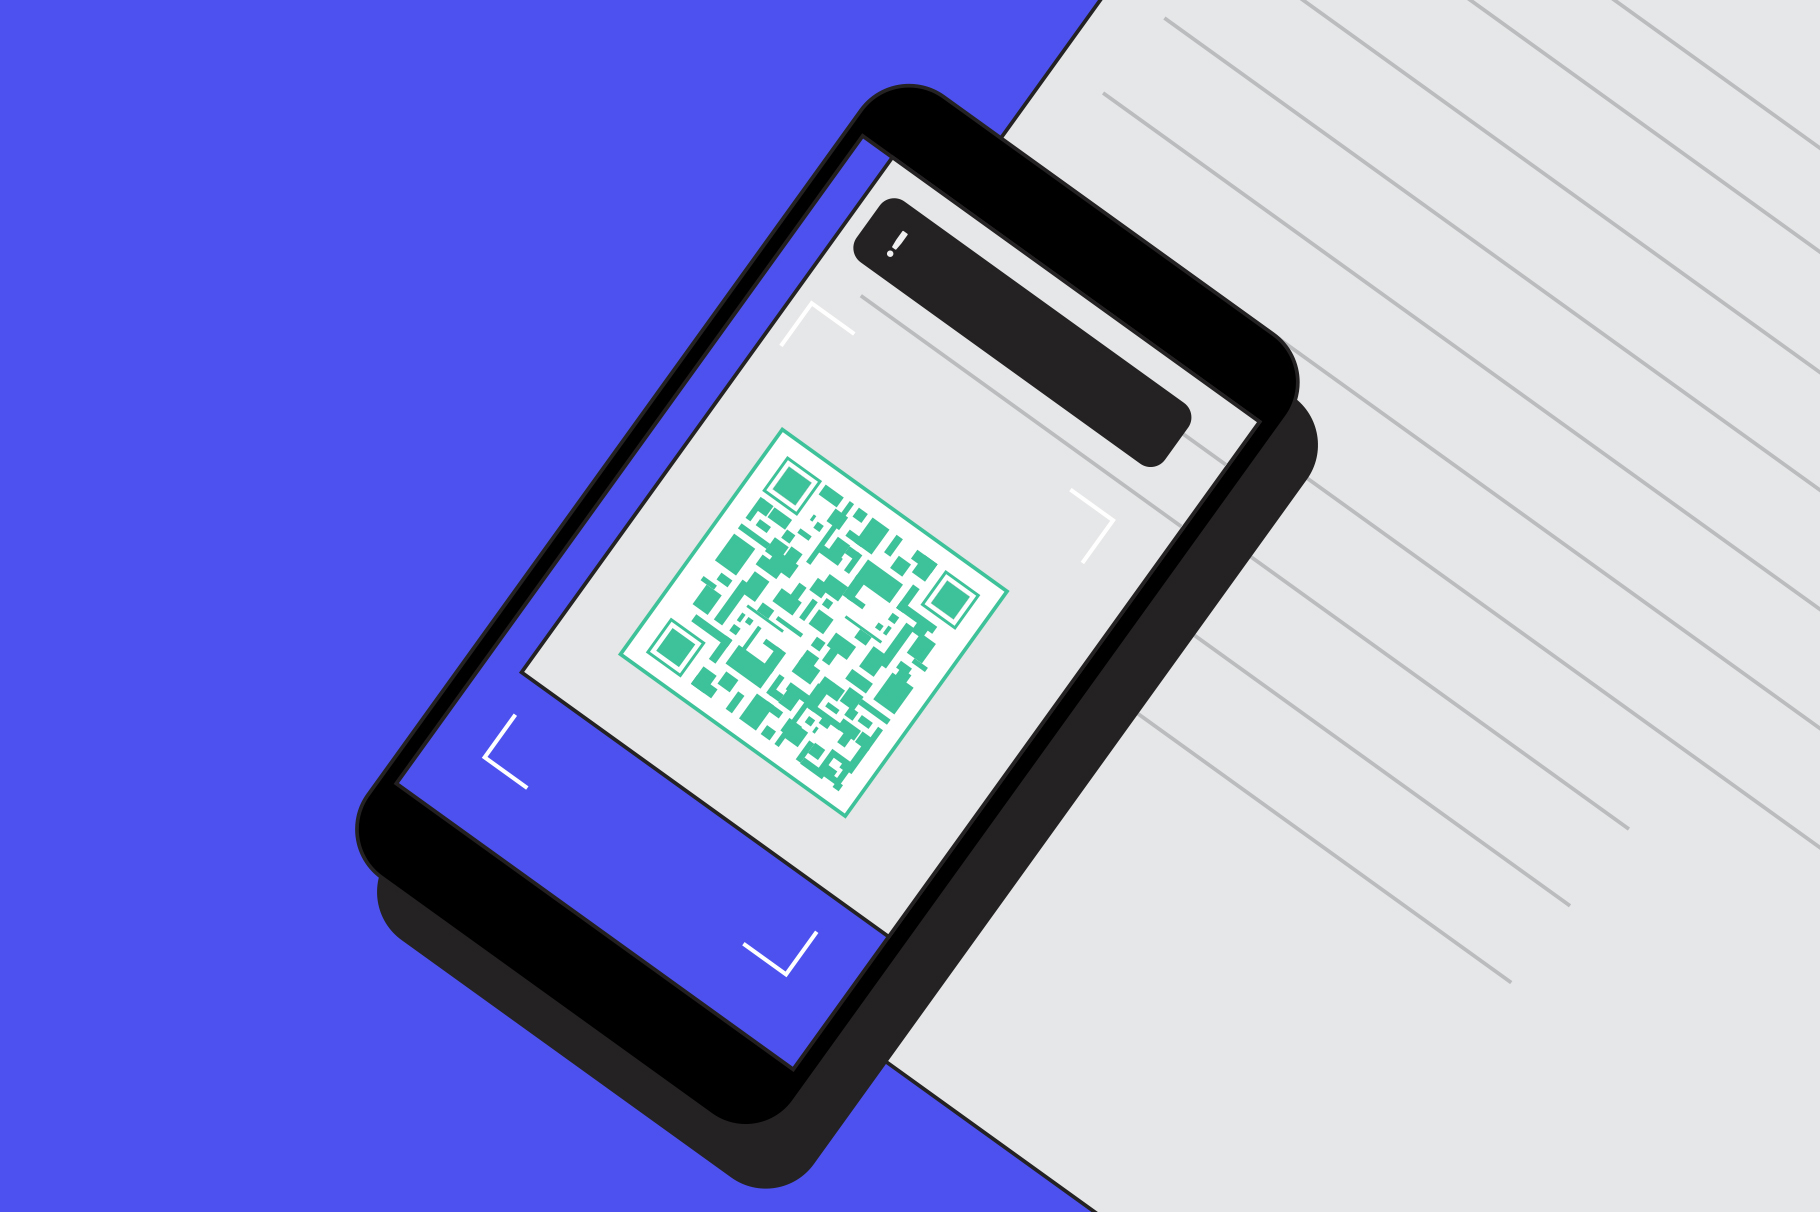 Example of a QR code on a smartphone